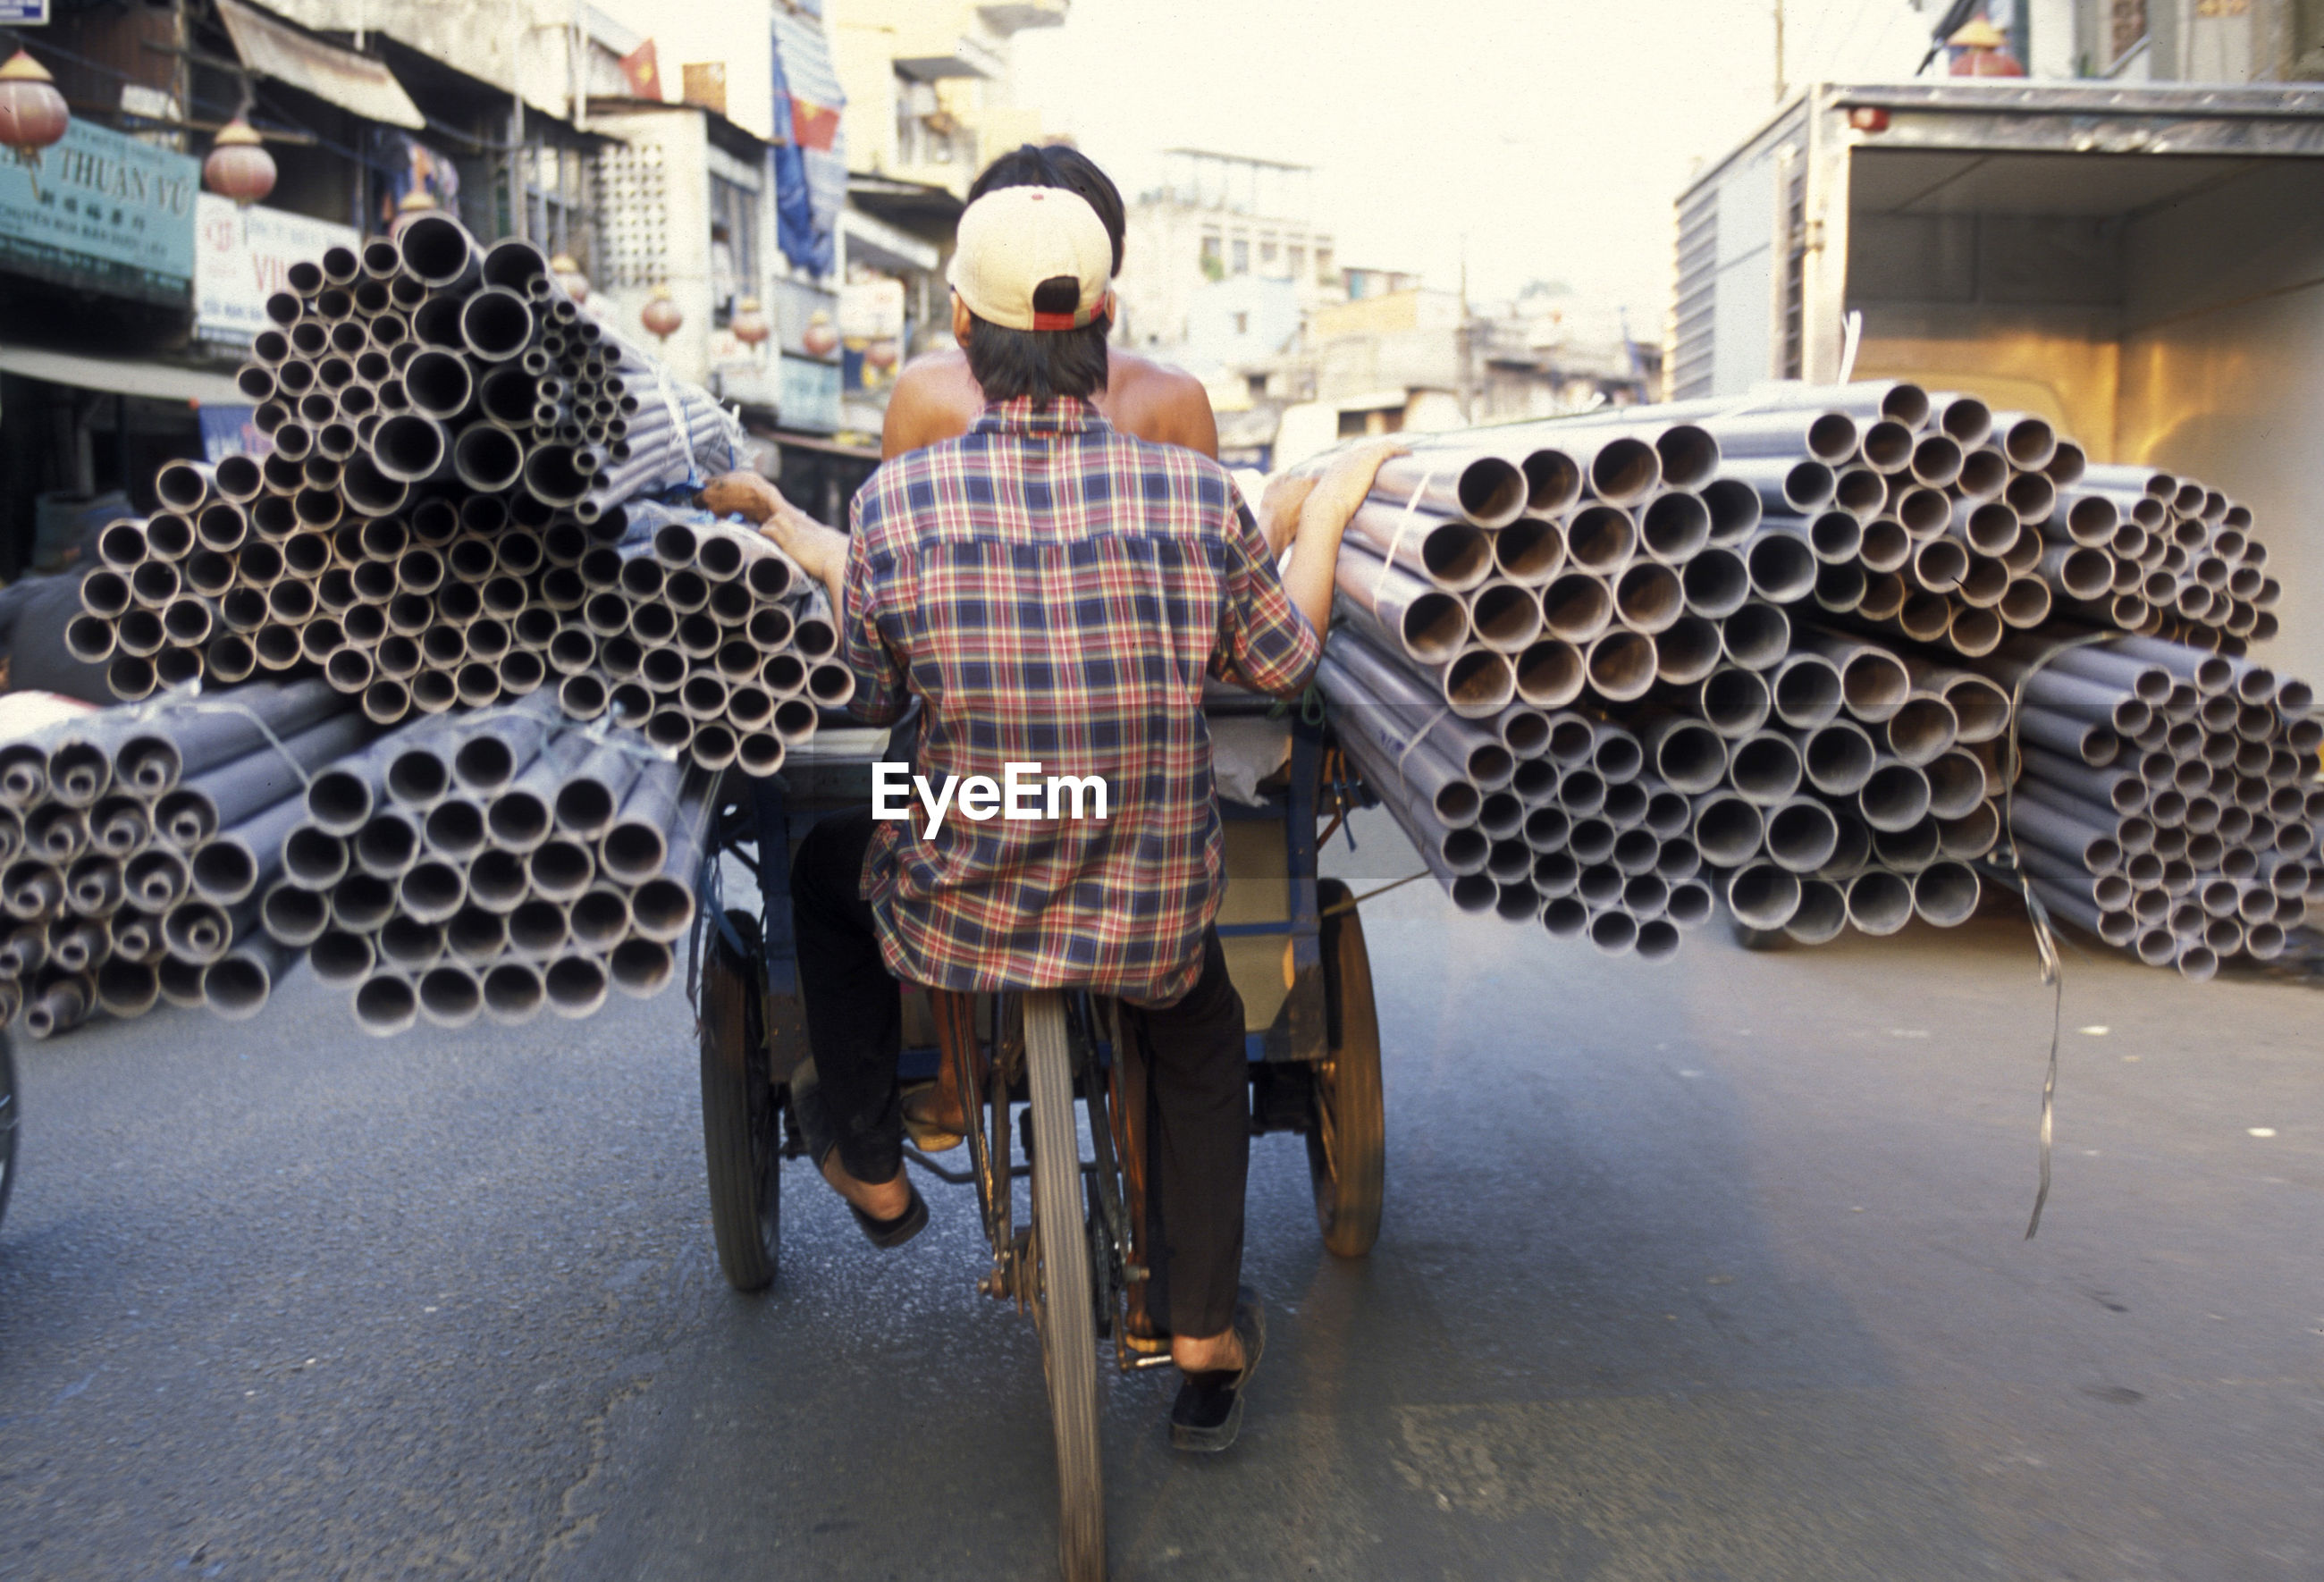 Rear view of people in tricycle while carrying pipes on street